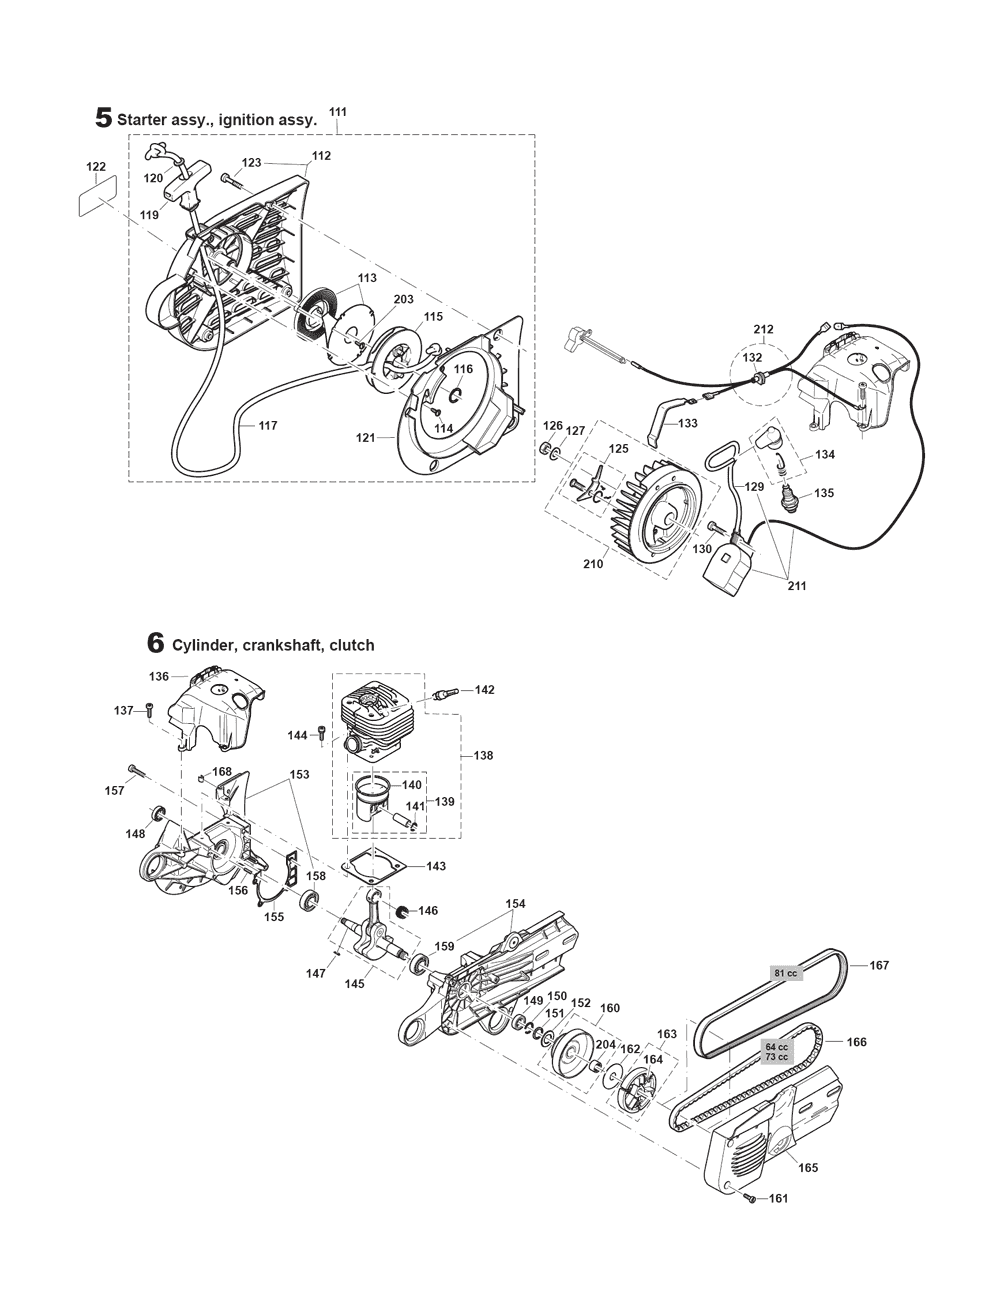 DPC7331-makita-PB-2Break Down